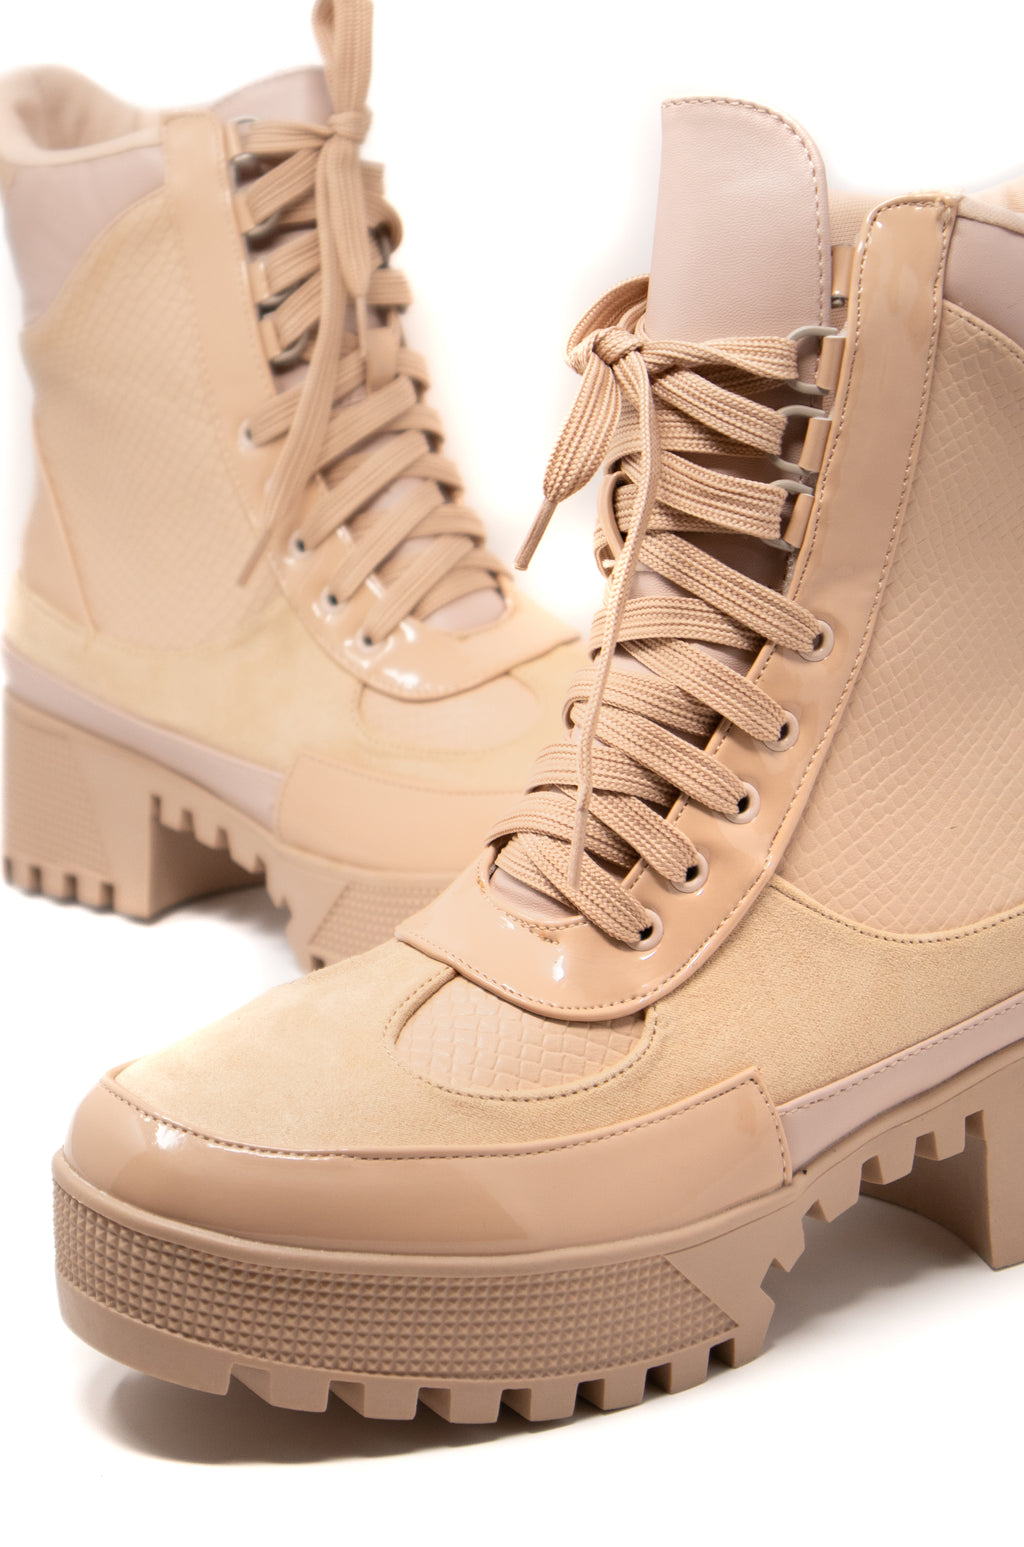 In Command - Nude Lug Sole Combat Boots